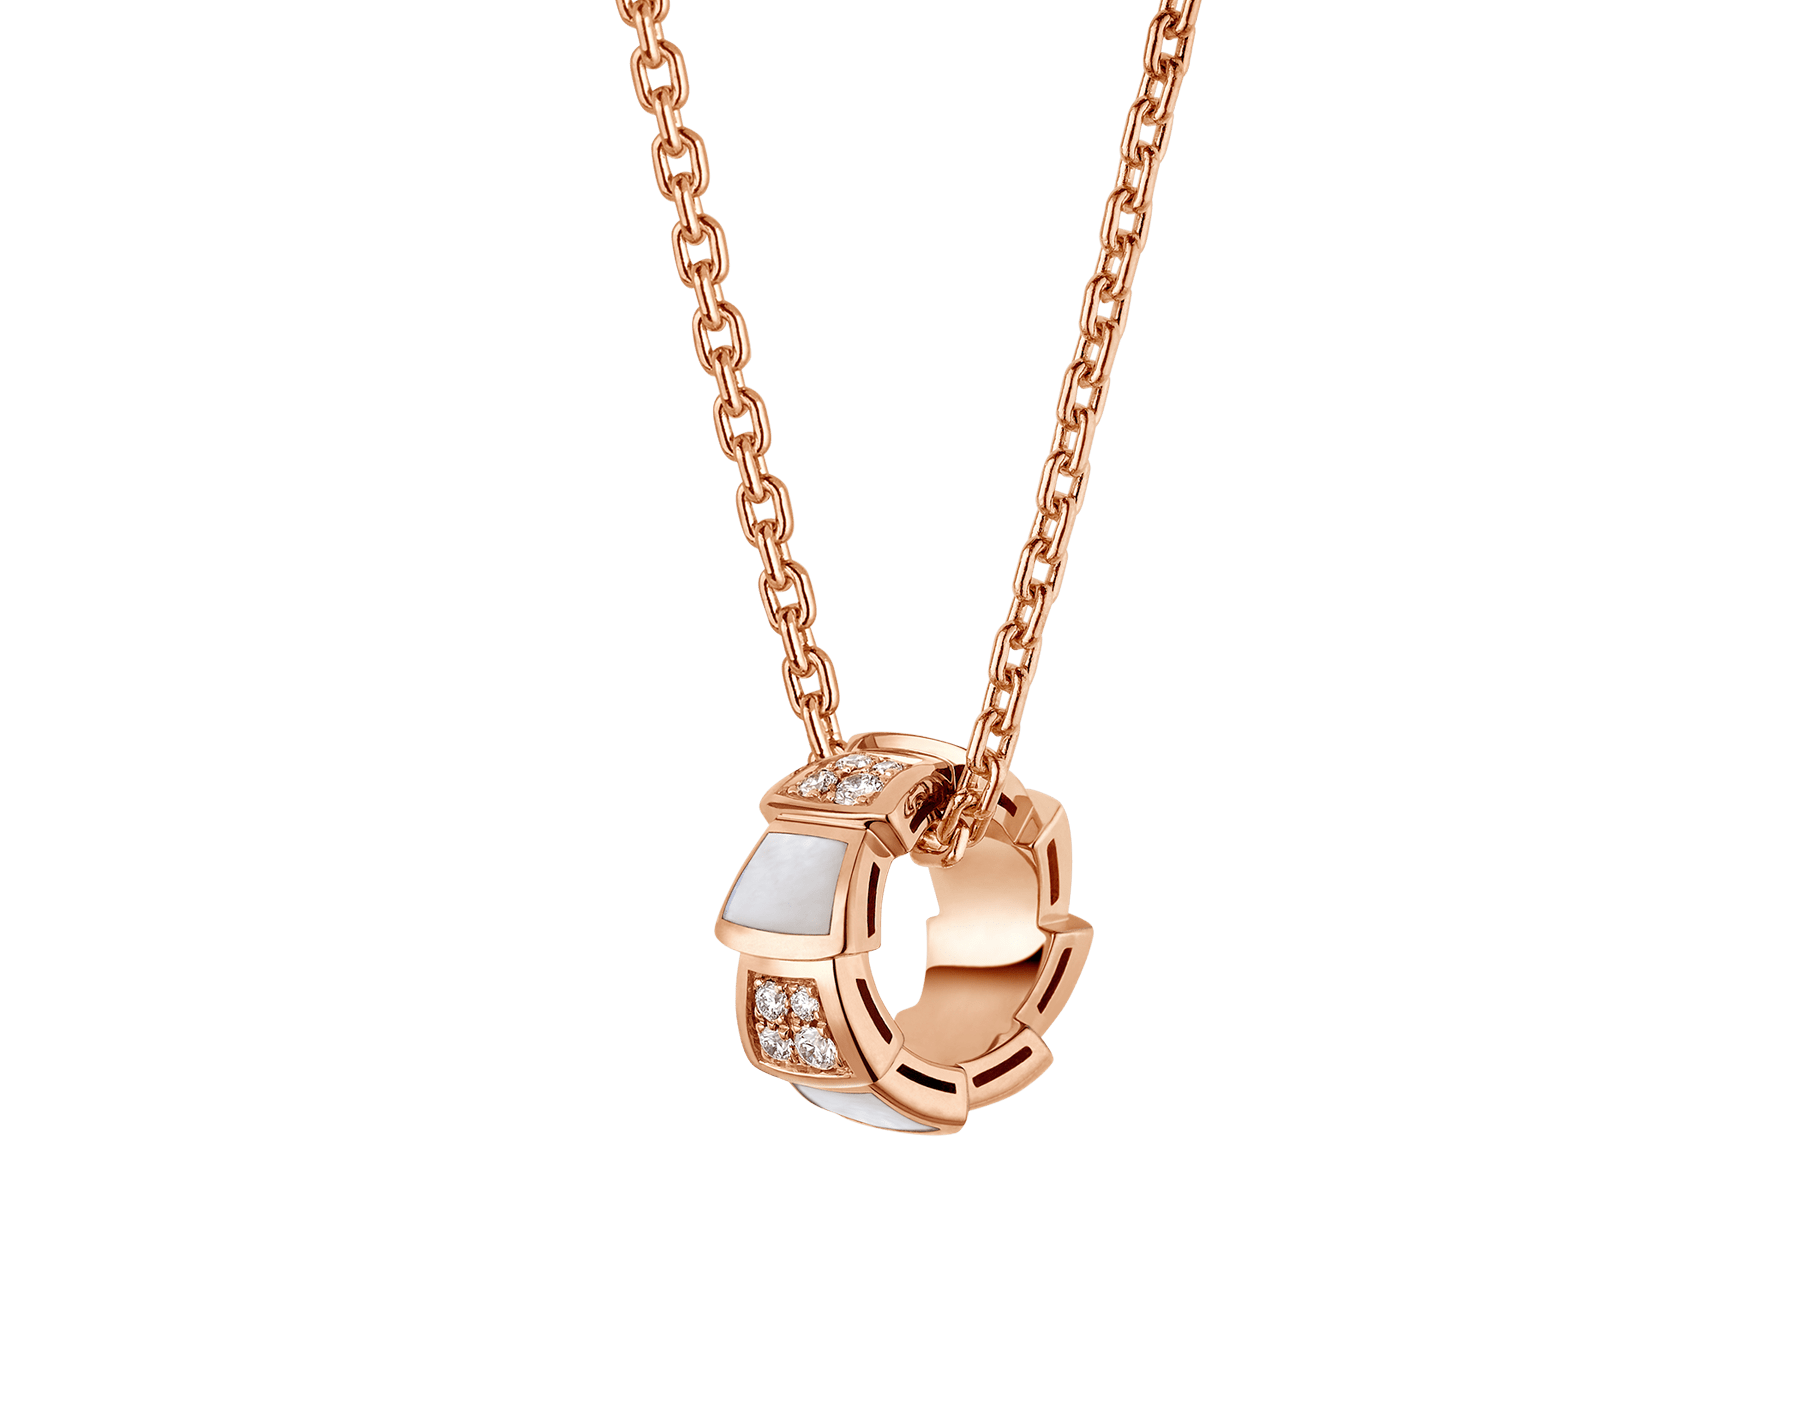 Serpenti Viper 18 kt rose gold necklace set with mother-of-pearl elements and pavé diamonds on the pendant. 357095 image 1